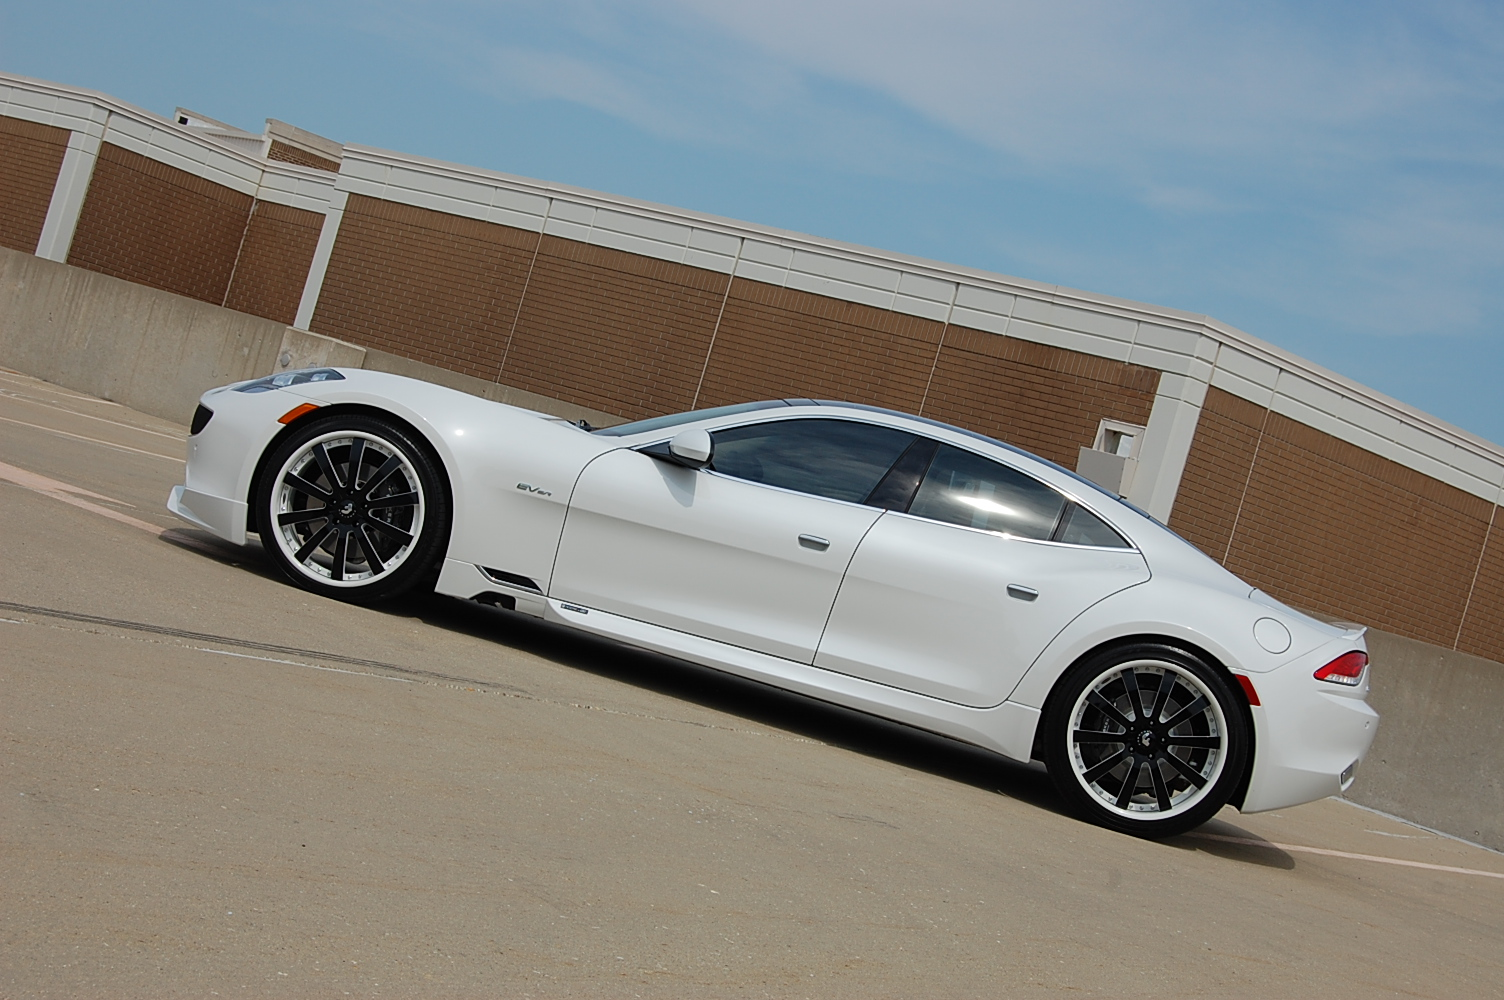 http://s1.cdn.autoevolution.com/images/news/gallery/first-fisker-karma-with-a-body-kit_2.jpg